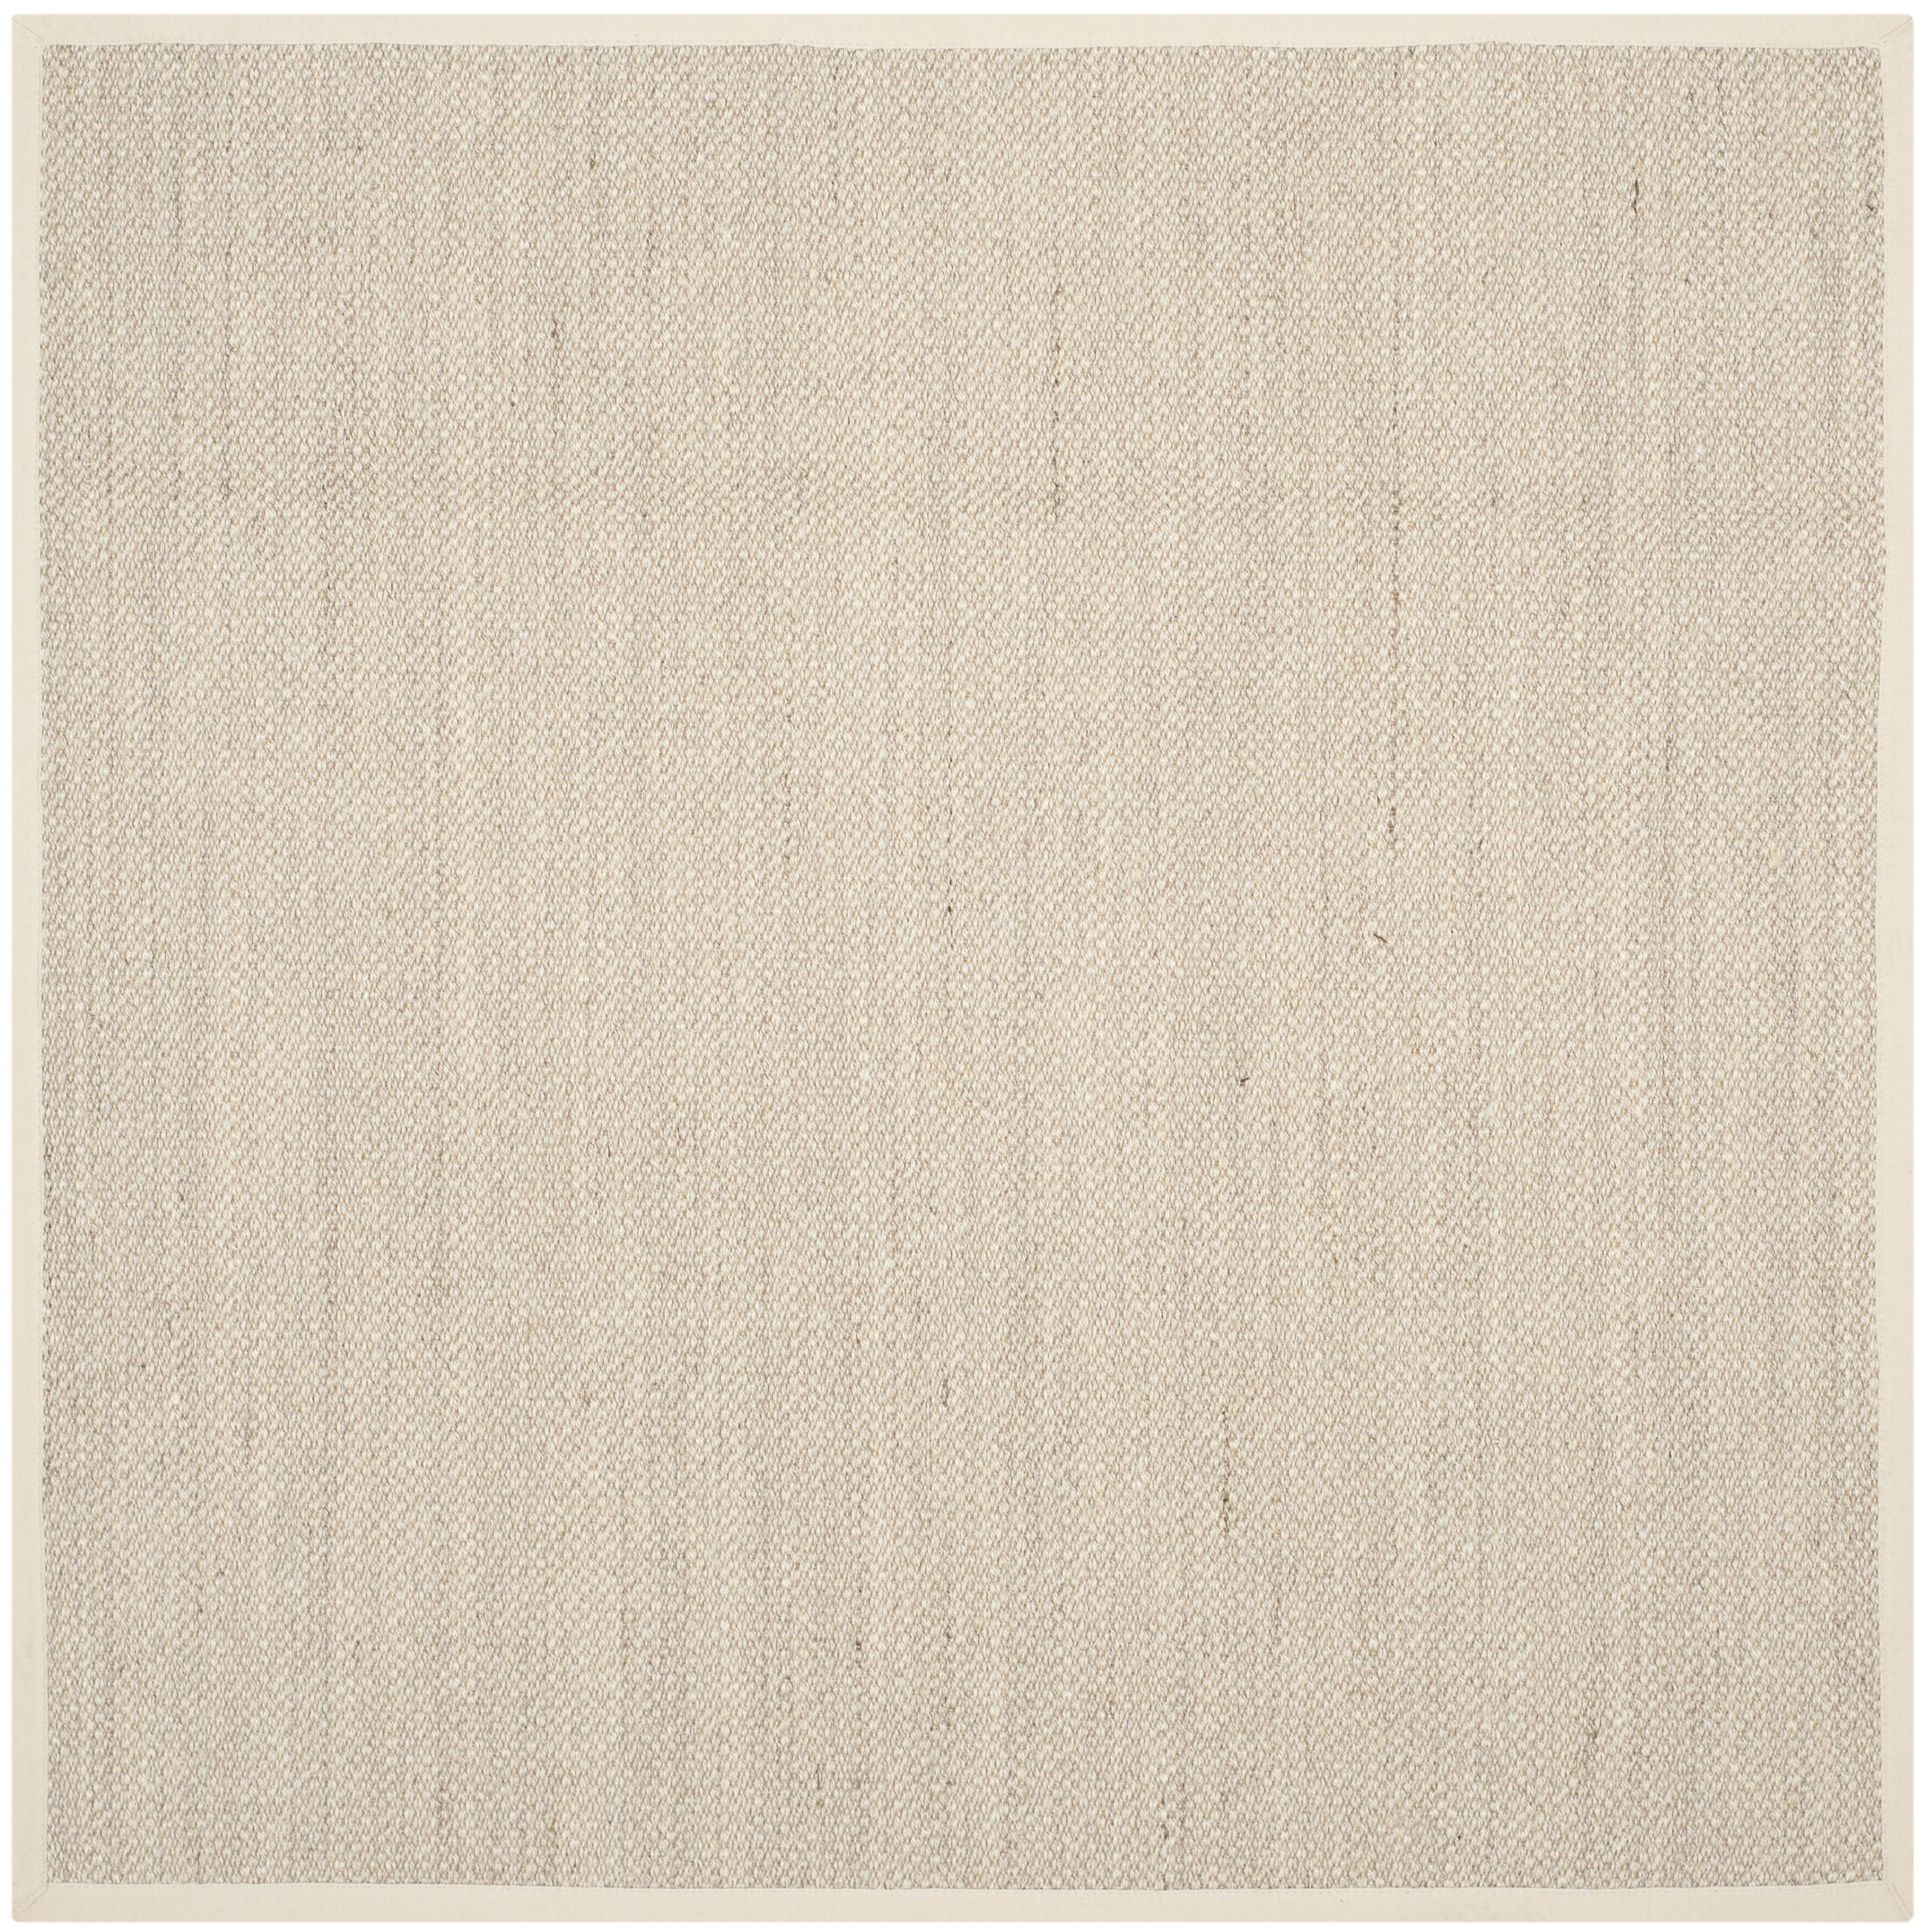 Tallowick Marble/Beige Area Rug Rug Size: Square 6'